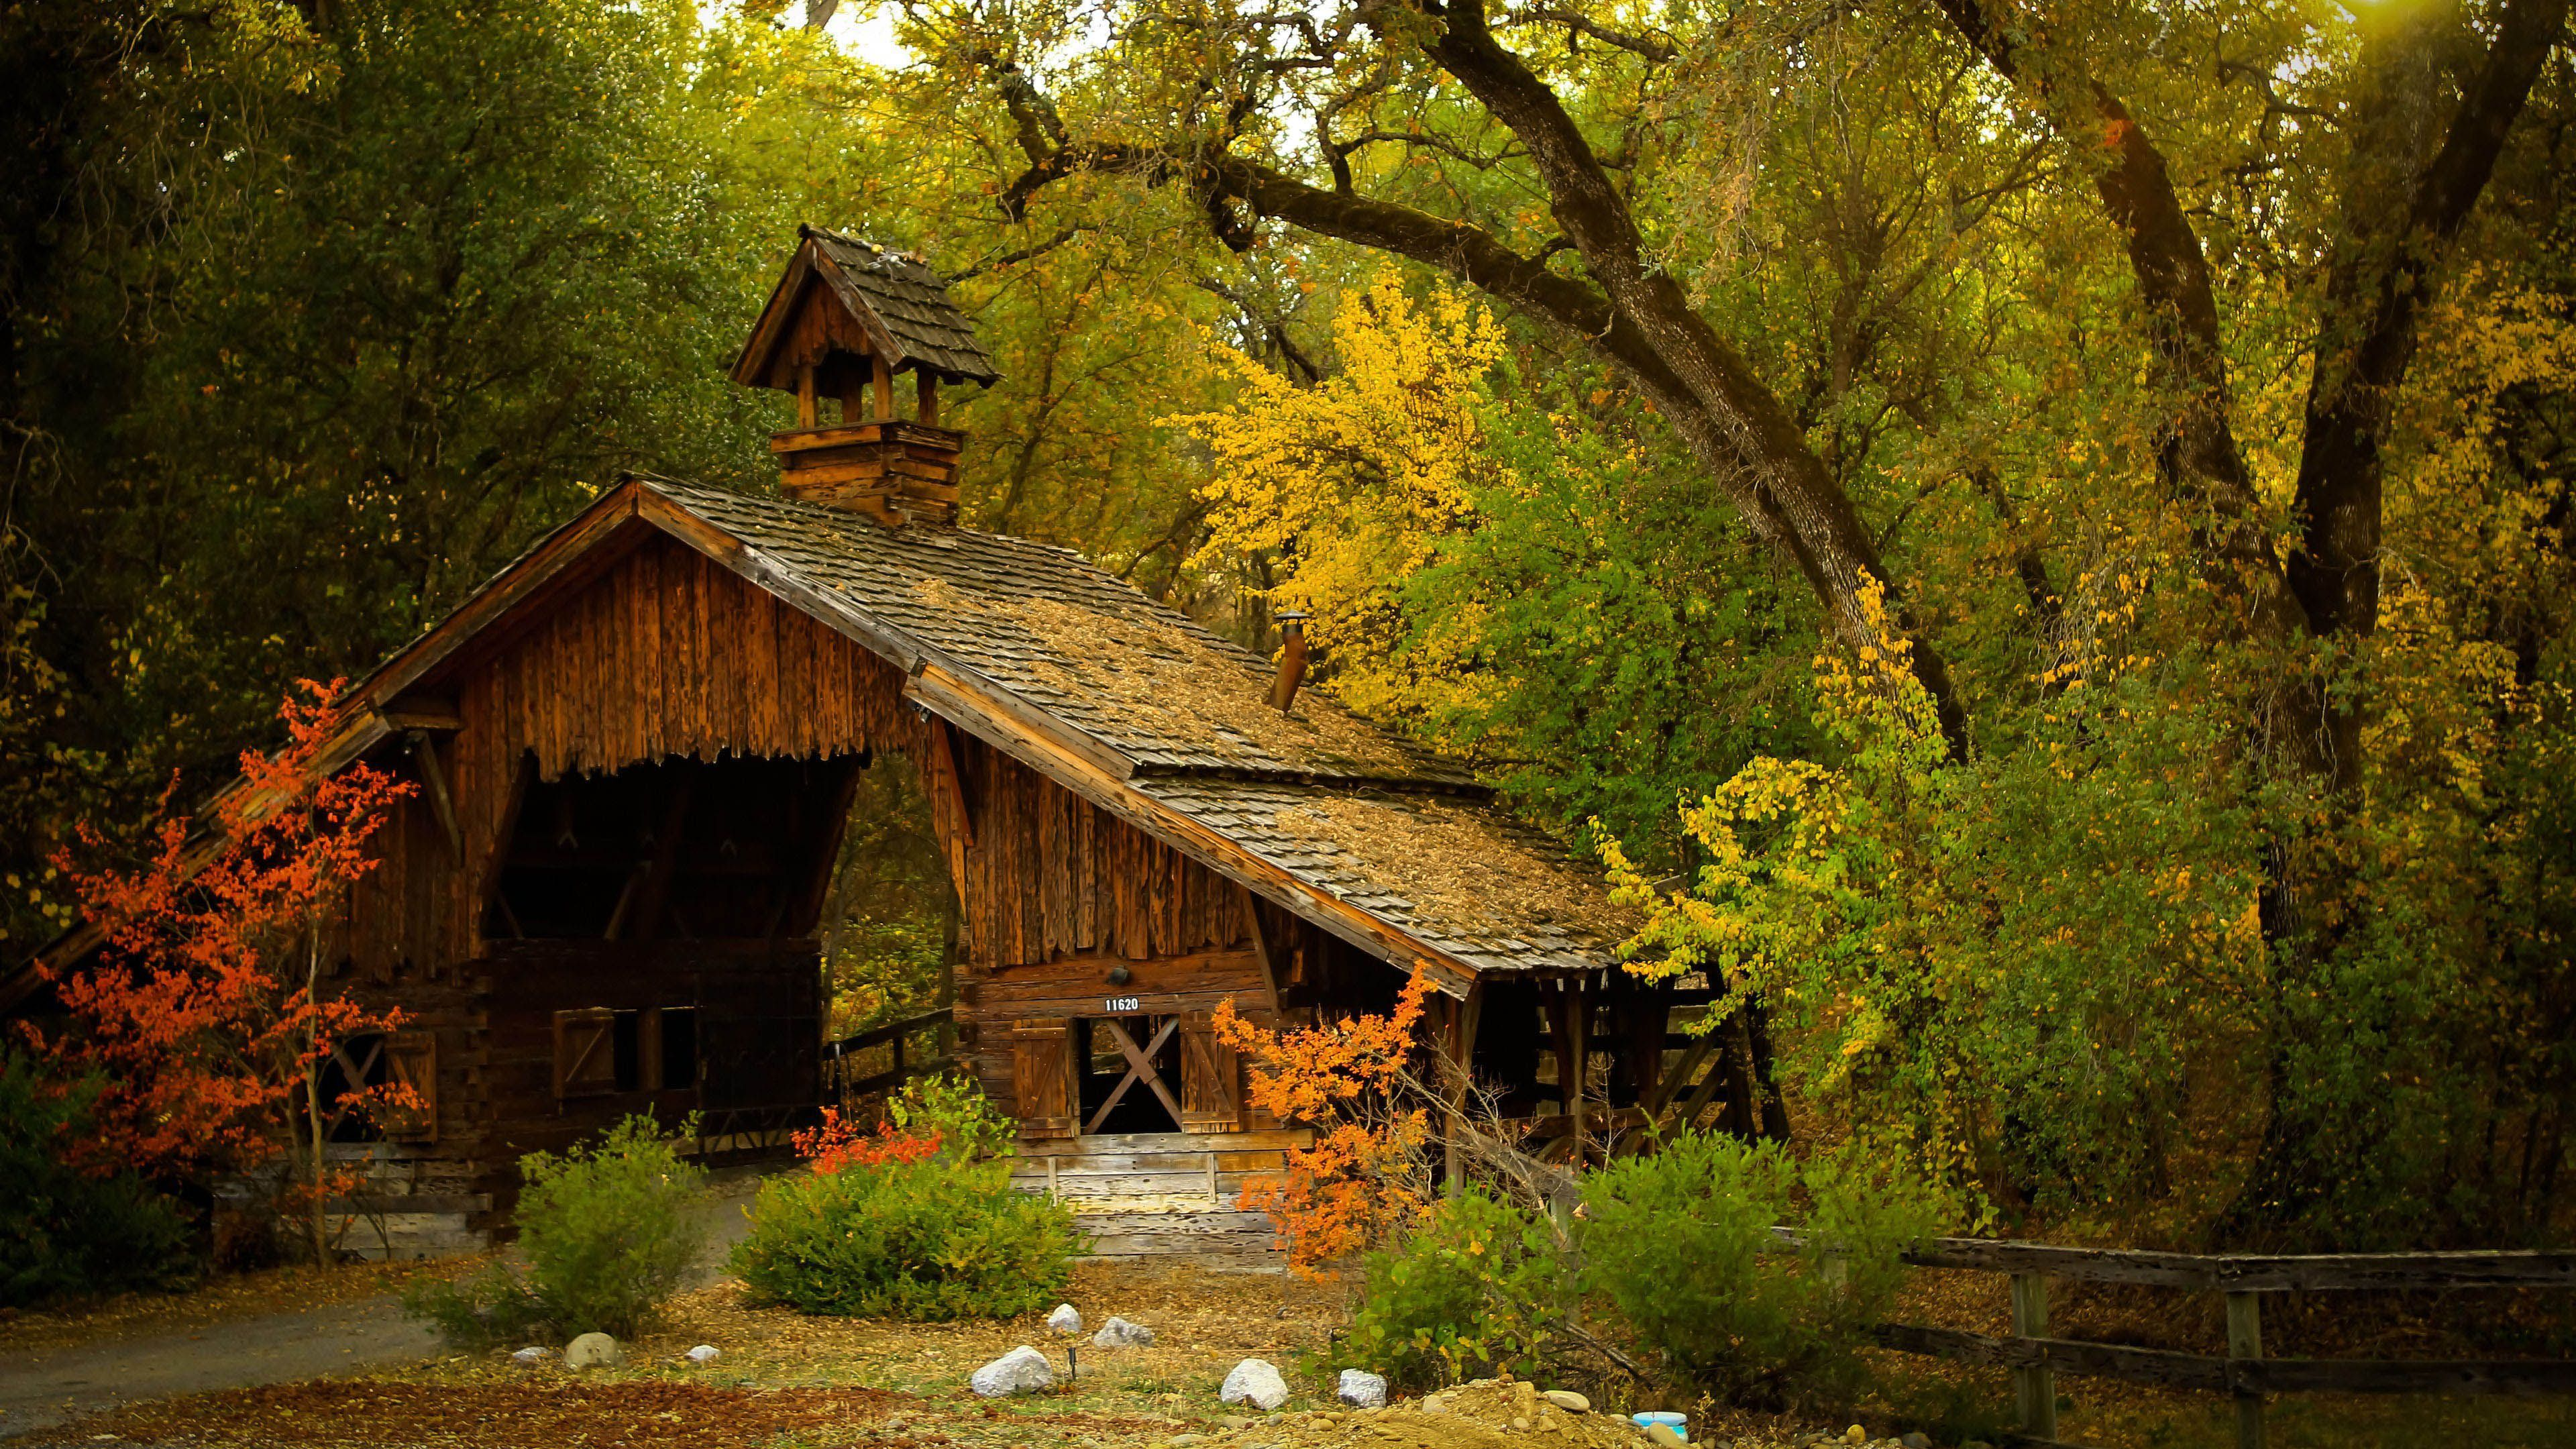 Fond D Ecran 3840x2160 Wooden House In The Forest Rustic Barn Old Barns House In The Woods